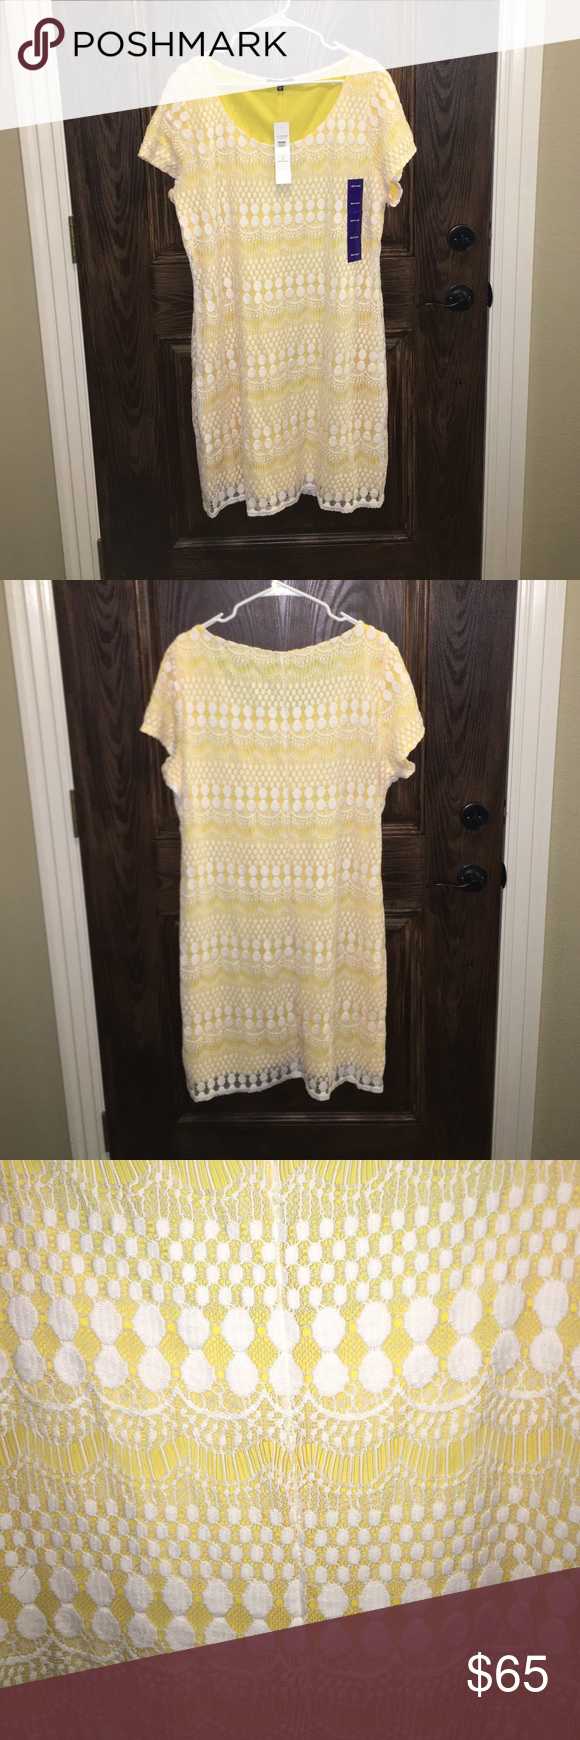 NWT: Beautiful Lined Yellow Sun Dress new with tags & never worn! COMES WITH FREE SURPRISE GIFT!!!!!! Tiana B.  Dresses